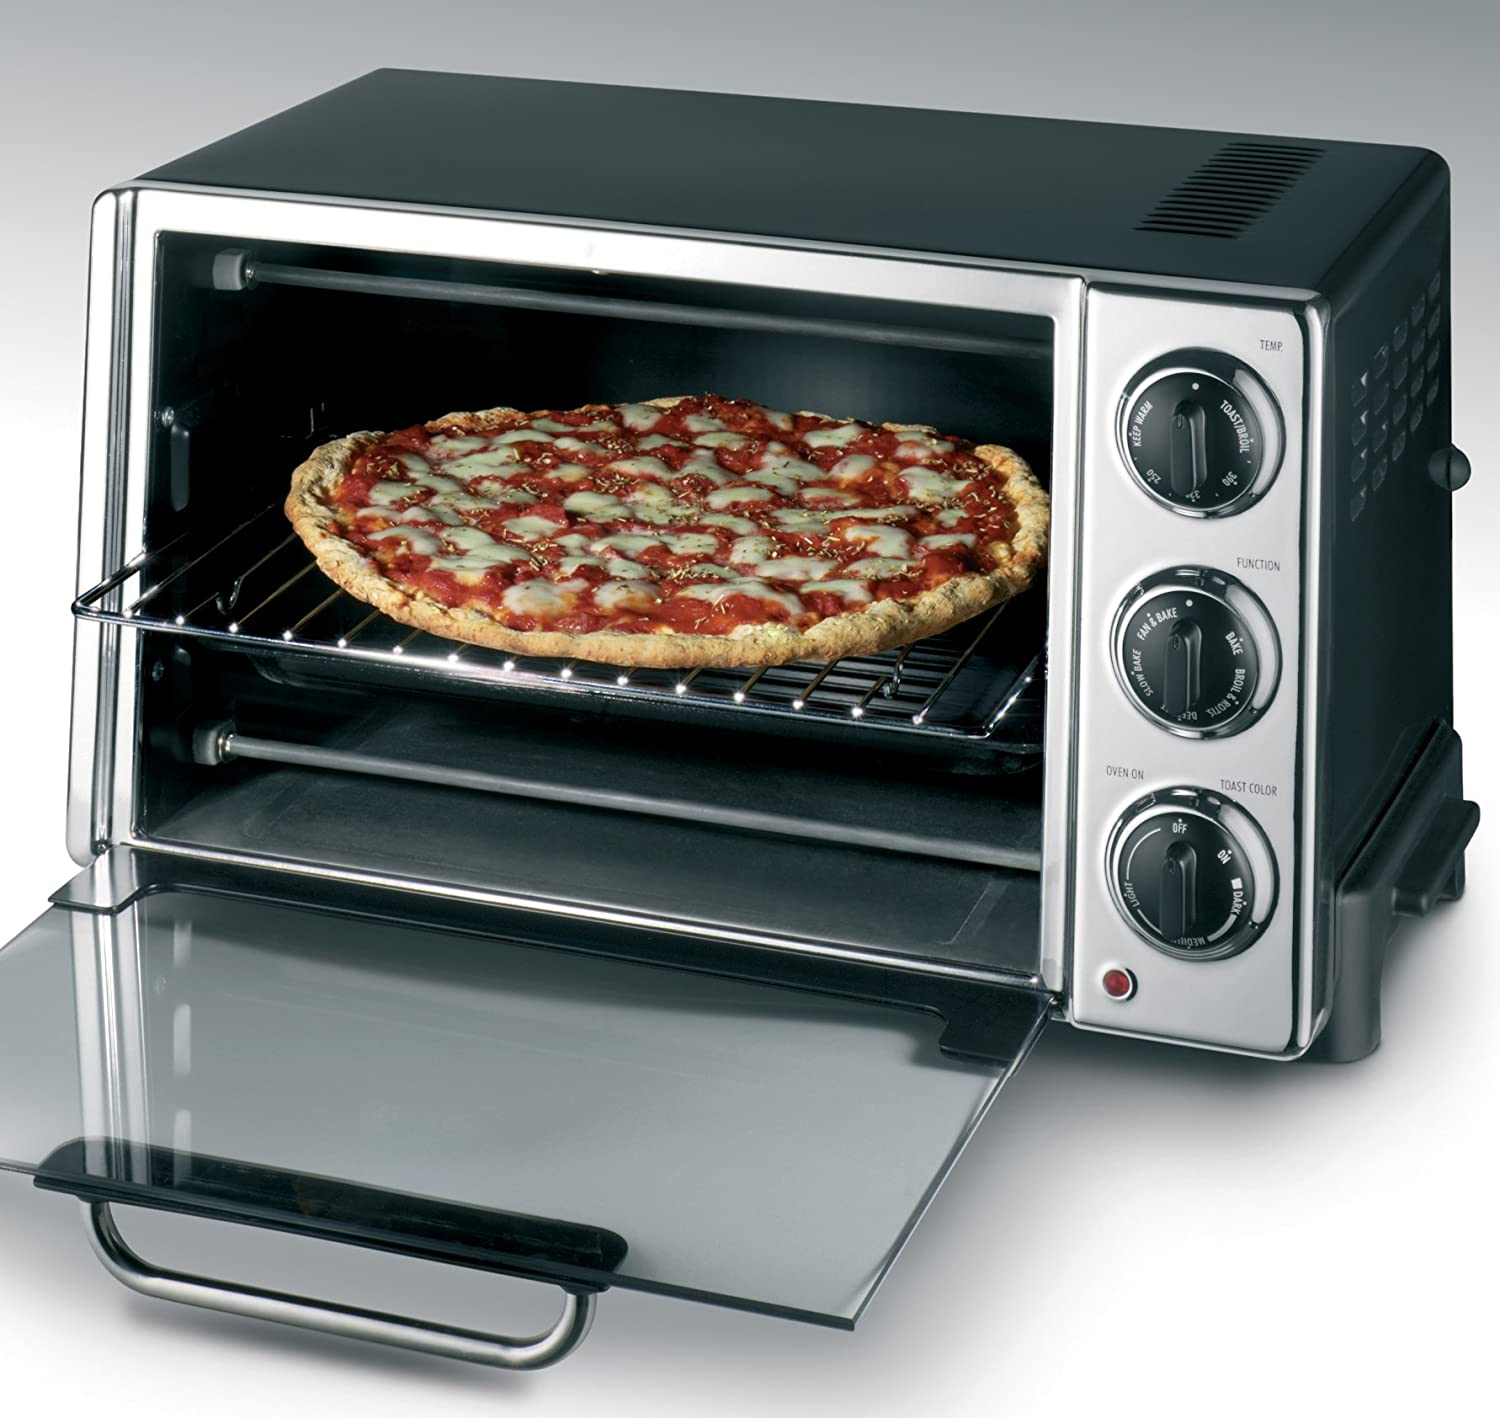 Countertop Convection Toaster Oven Recipes : ... Convection Oven Rotisserie Bake Pizza Toaster Broil Warm Food Cooking